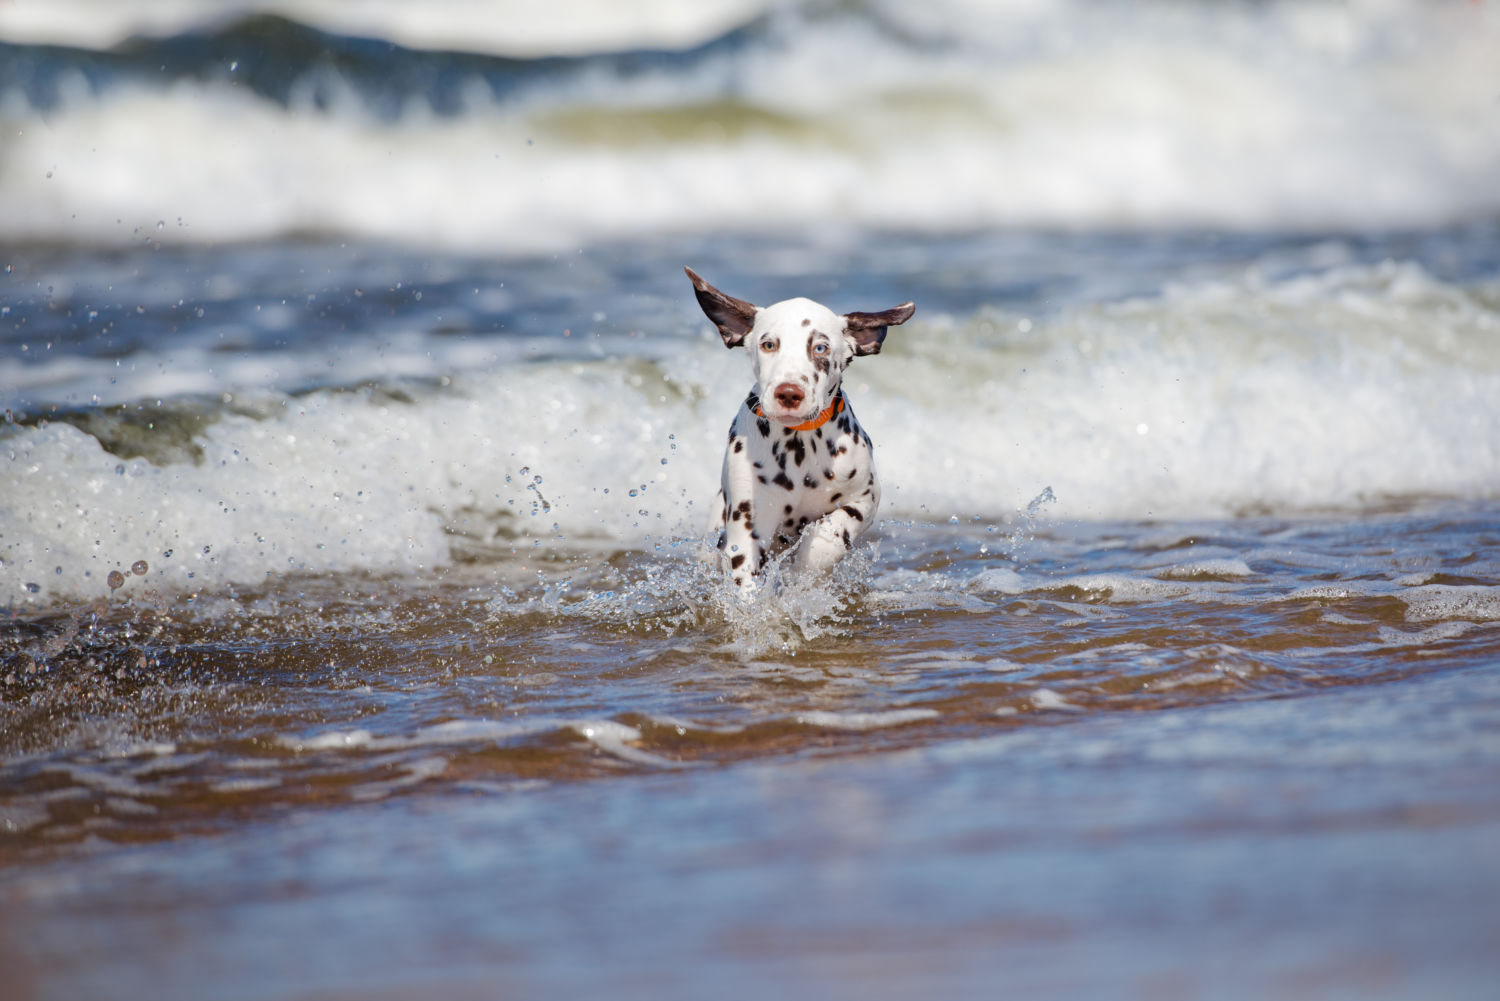 Doggy paddle without the danger – pet safety around water